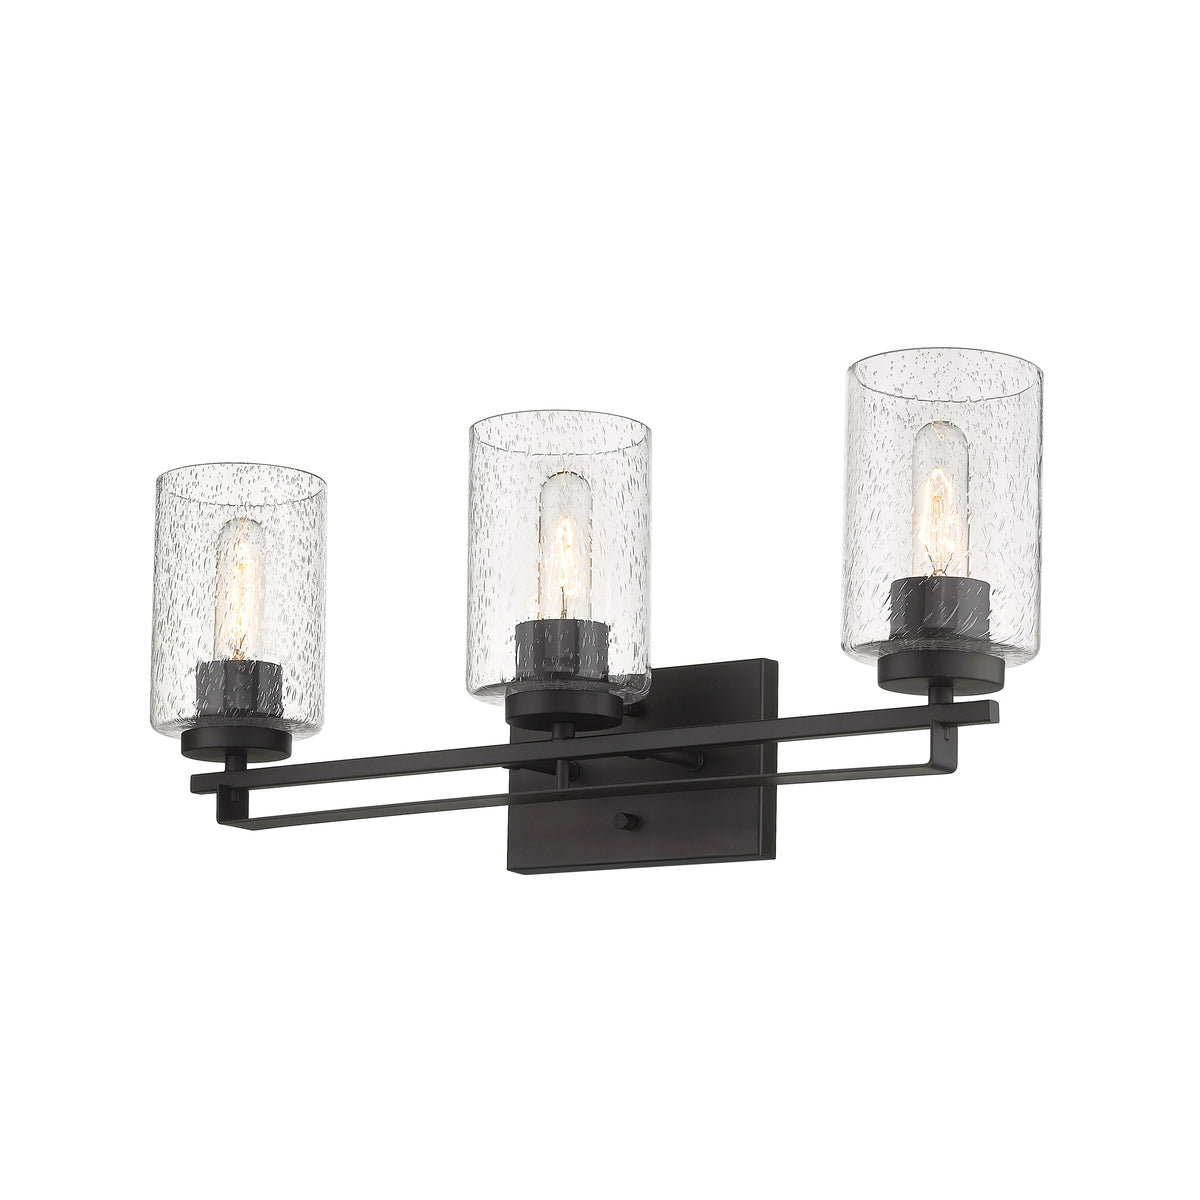 Borella 3-Light Vanity Light